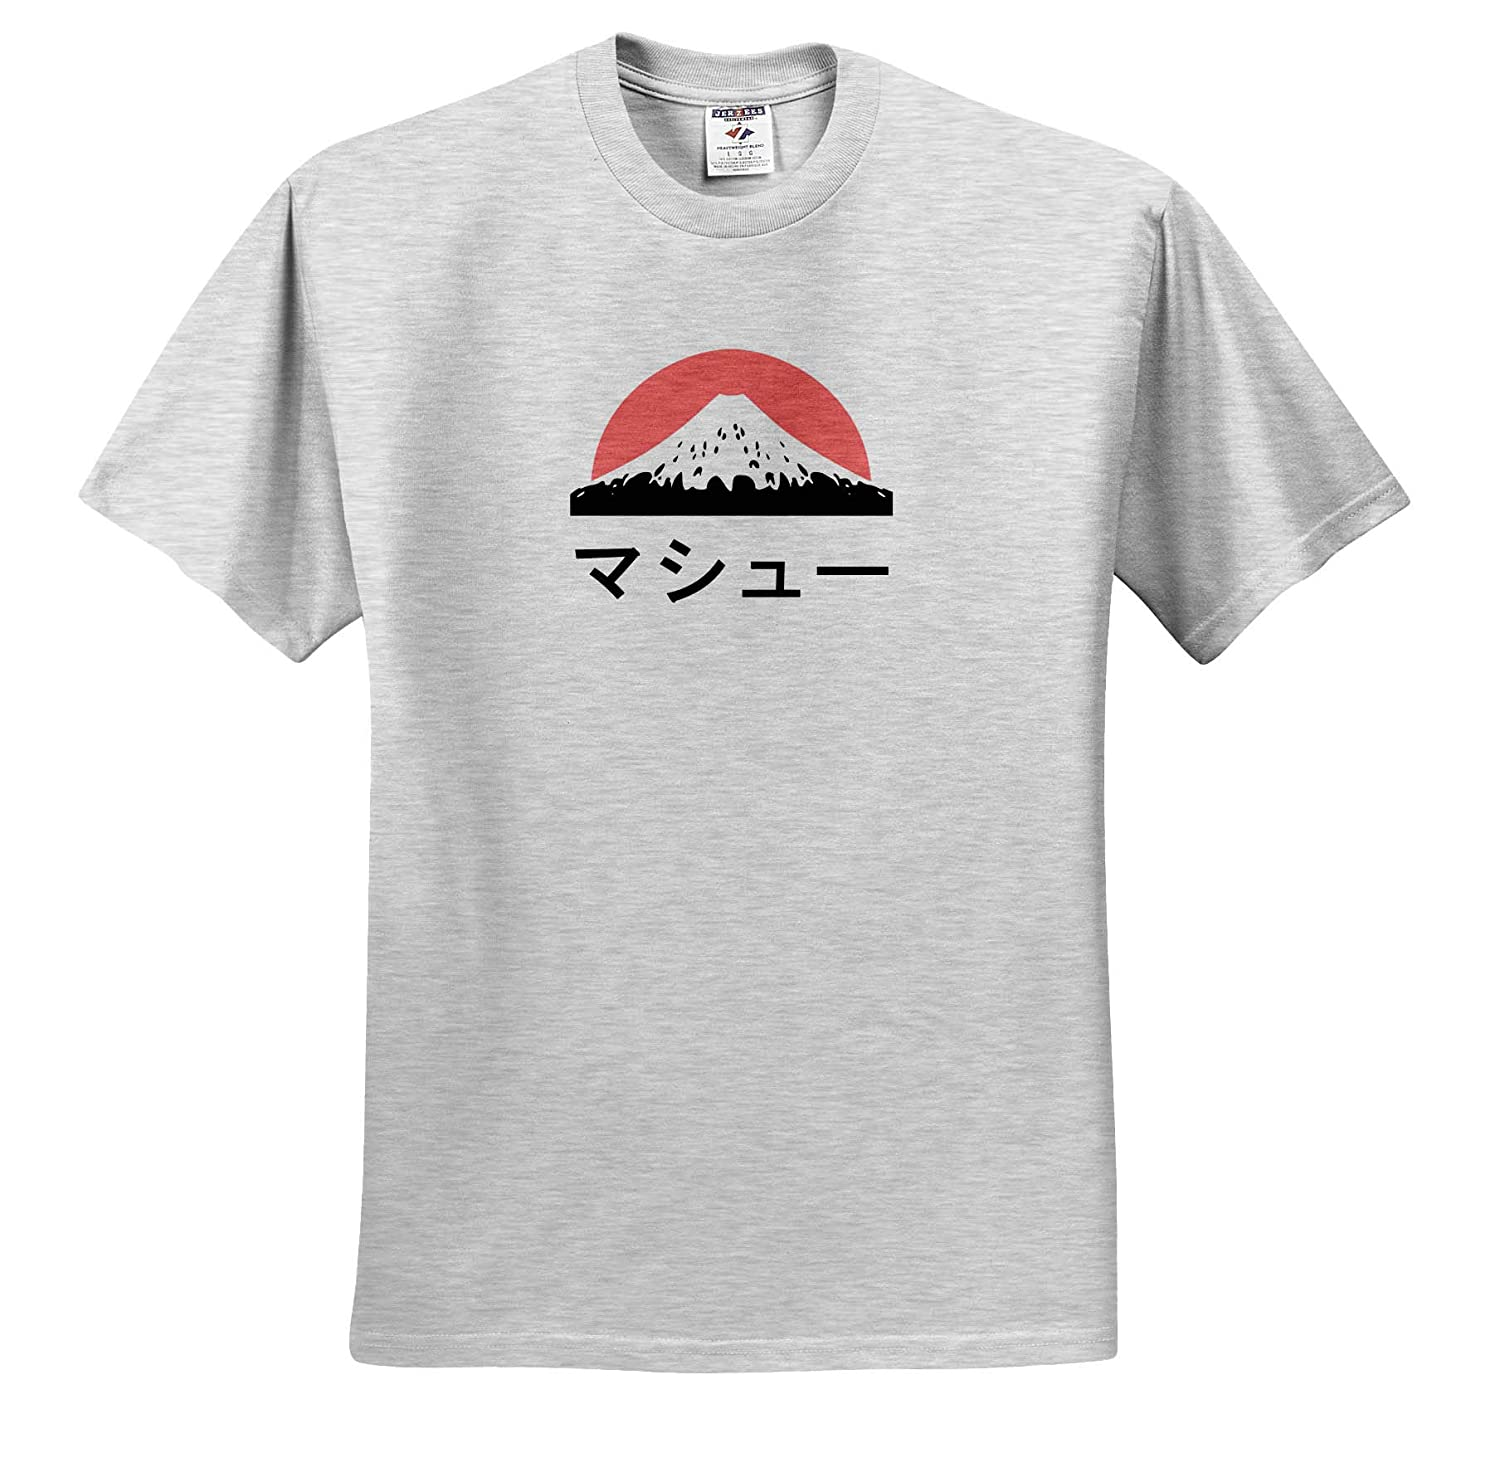 Matthew in Japanese Letters ts/_320582 Name in Japanese Adult T-Shirt XL 3dRose InspirationzStore